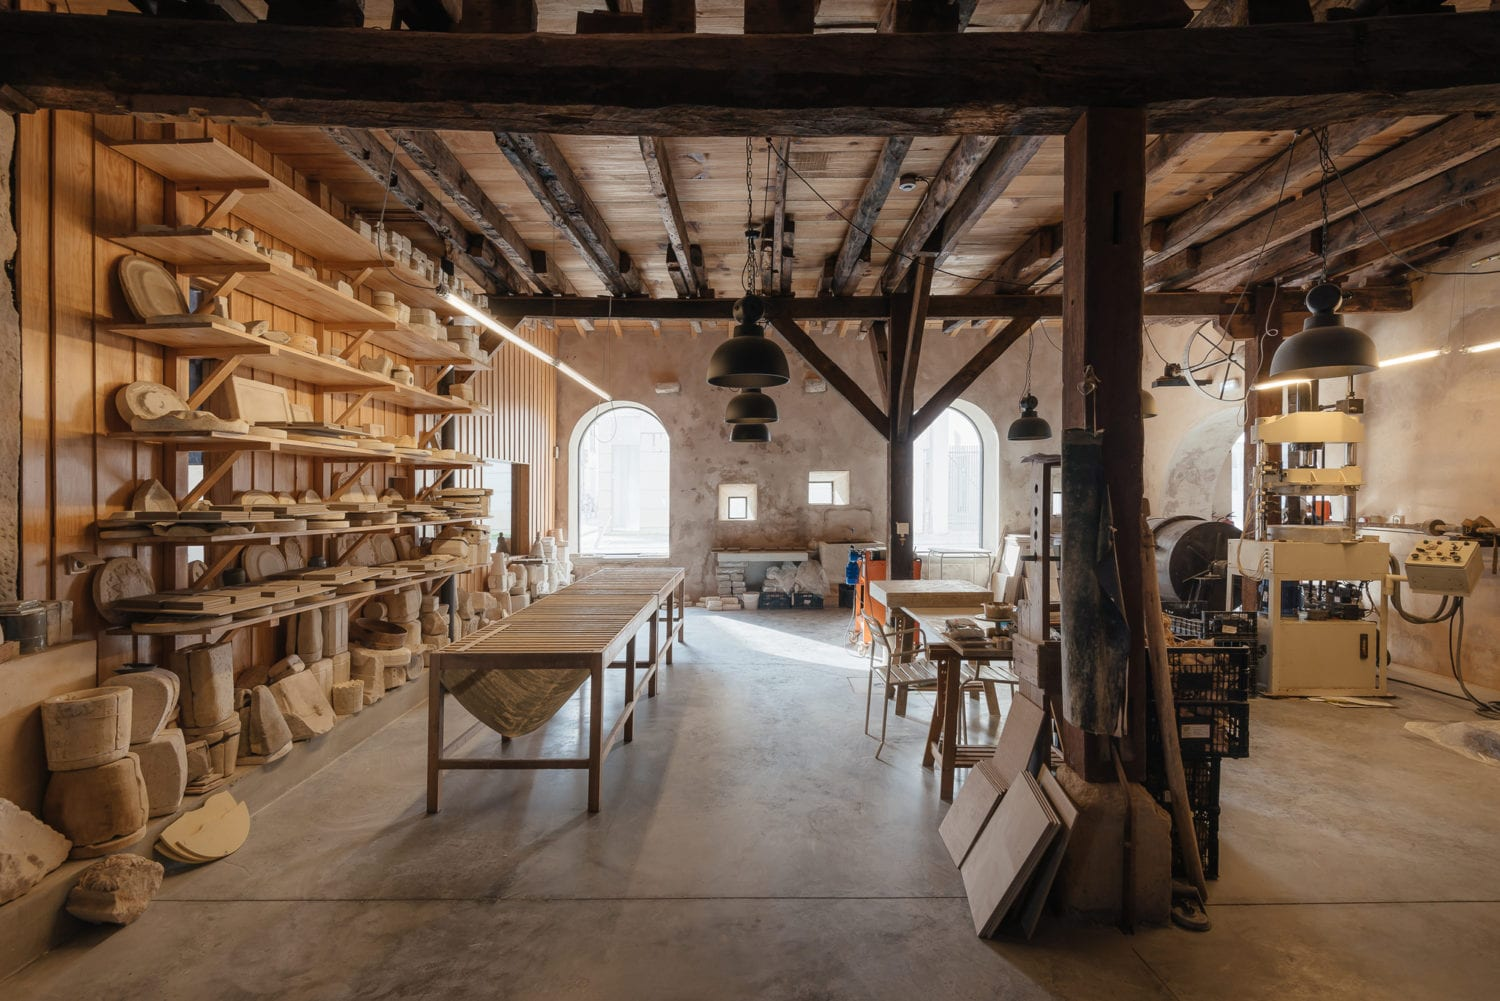 Luisa Bebiano And Atelier Do Corvo Renovation Old Ceramic Society Of Coimbra 18th Century Building Yellowtrace 09